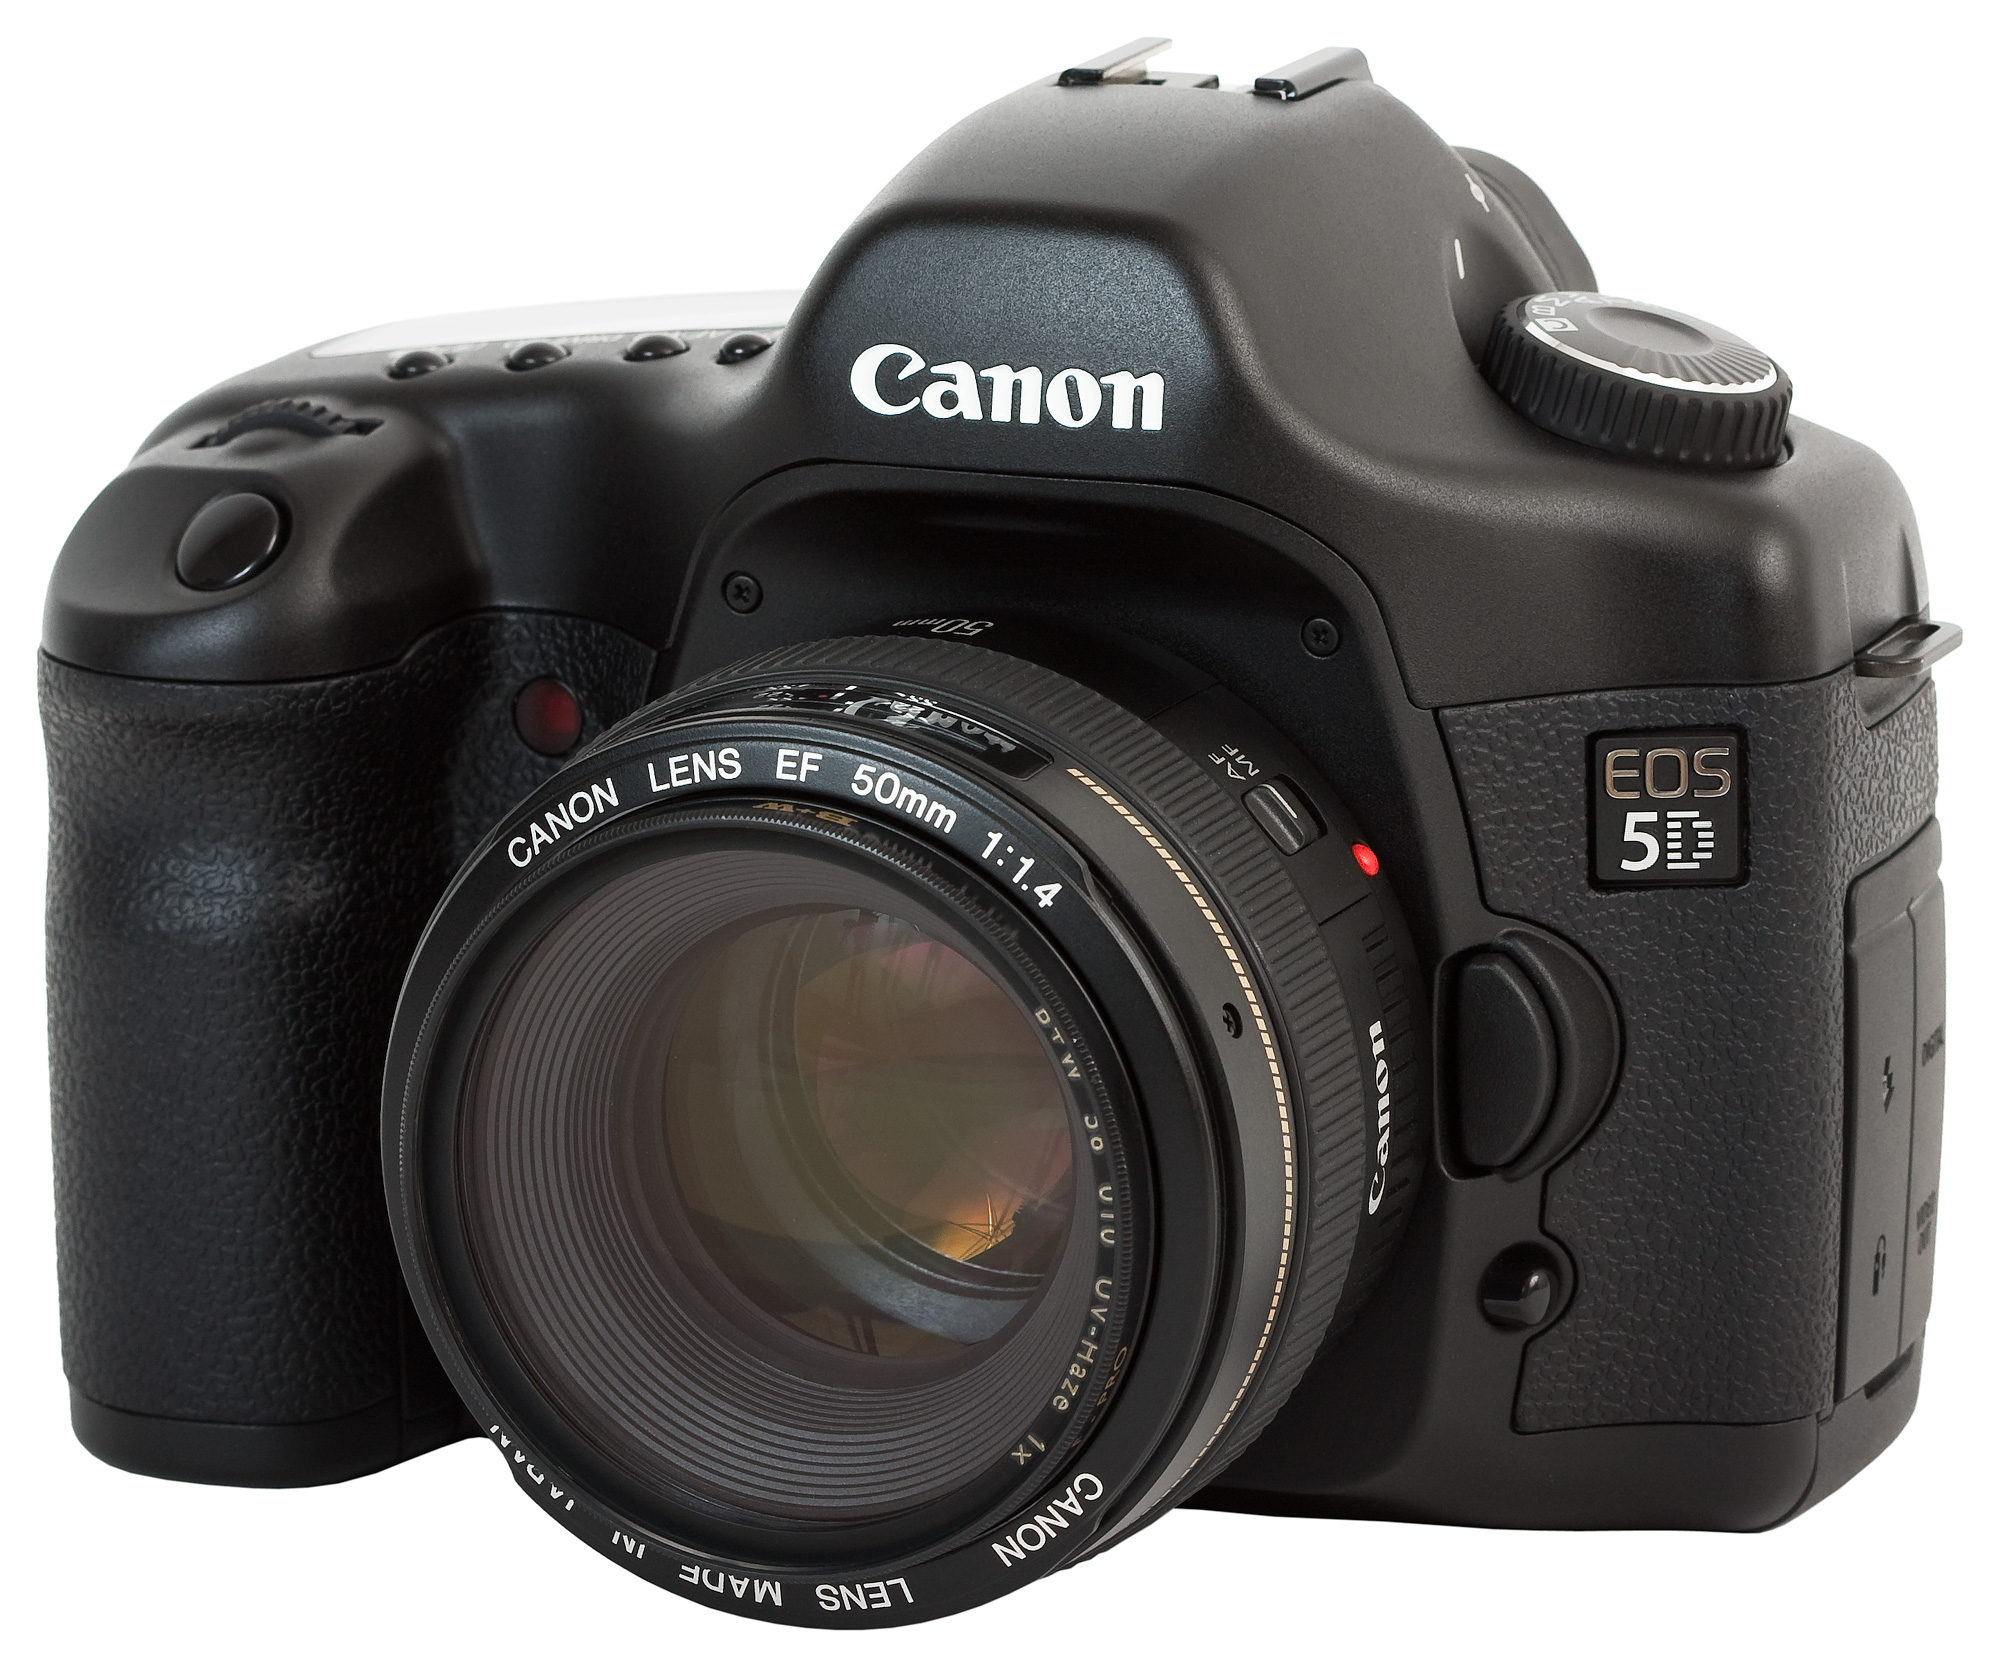 Canon 5D Review in 2021